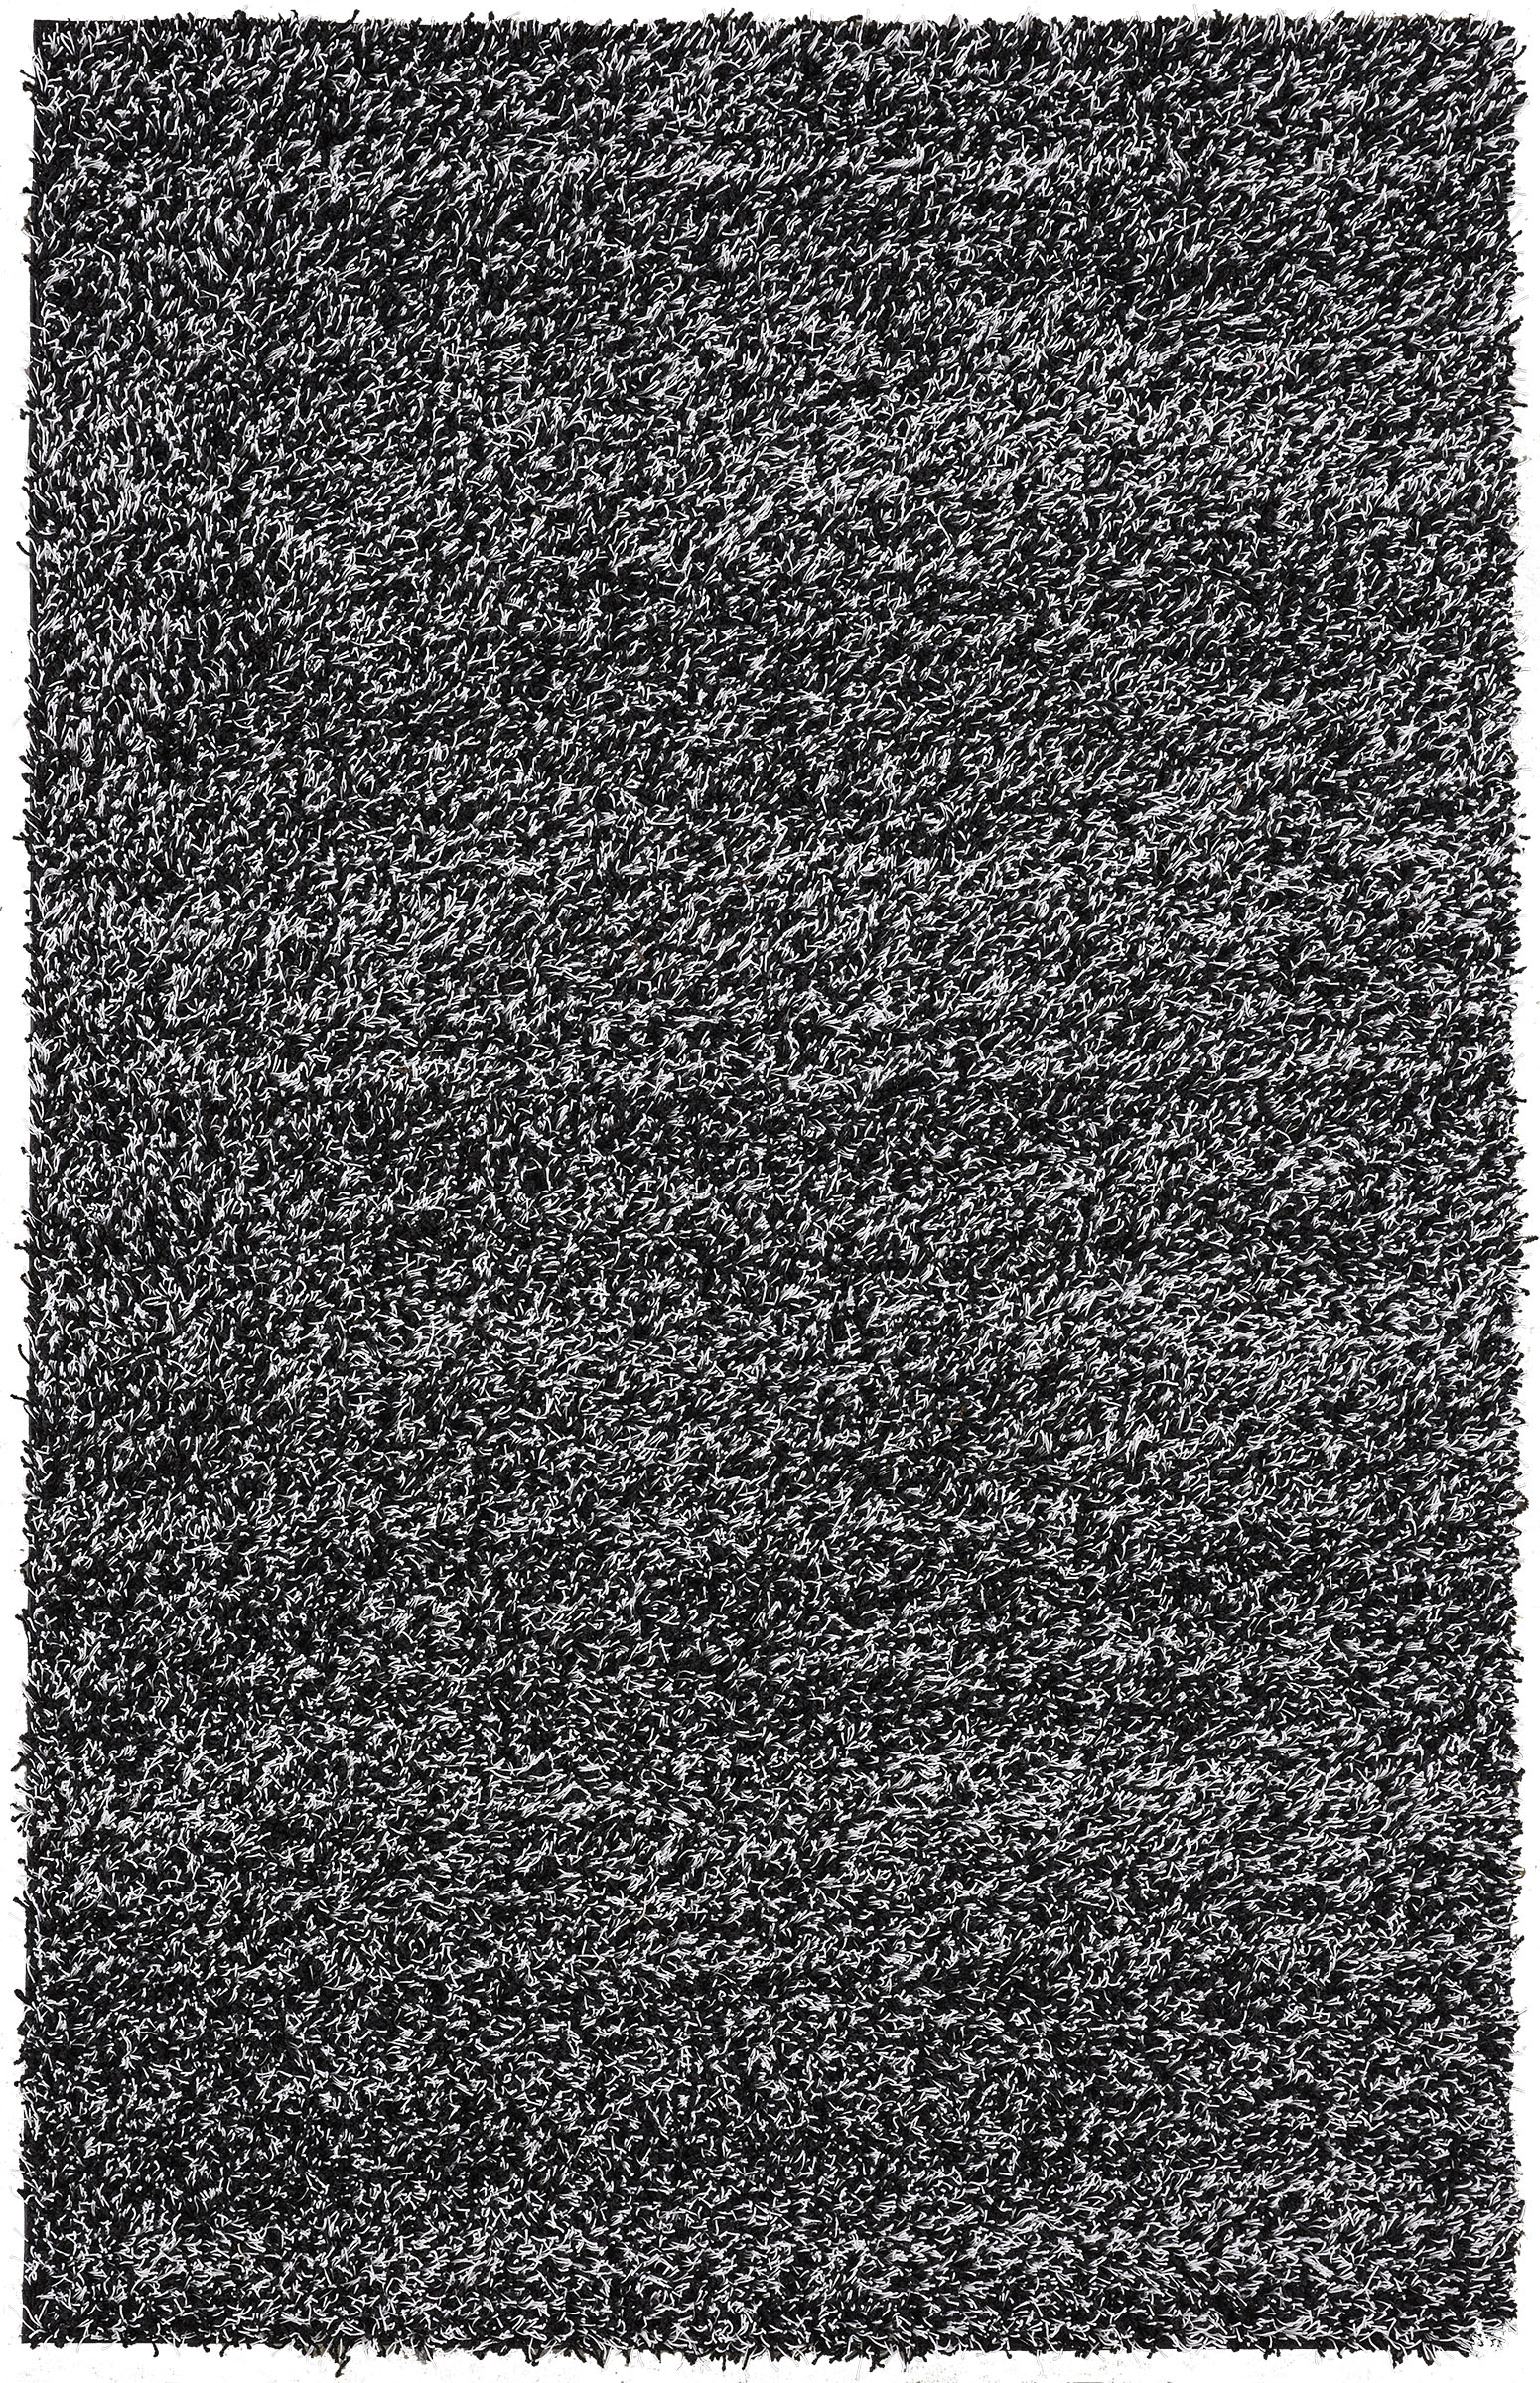 Contemporary Shag Area Rug With Mixed Black And White Threads 8 X10